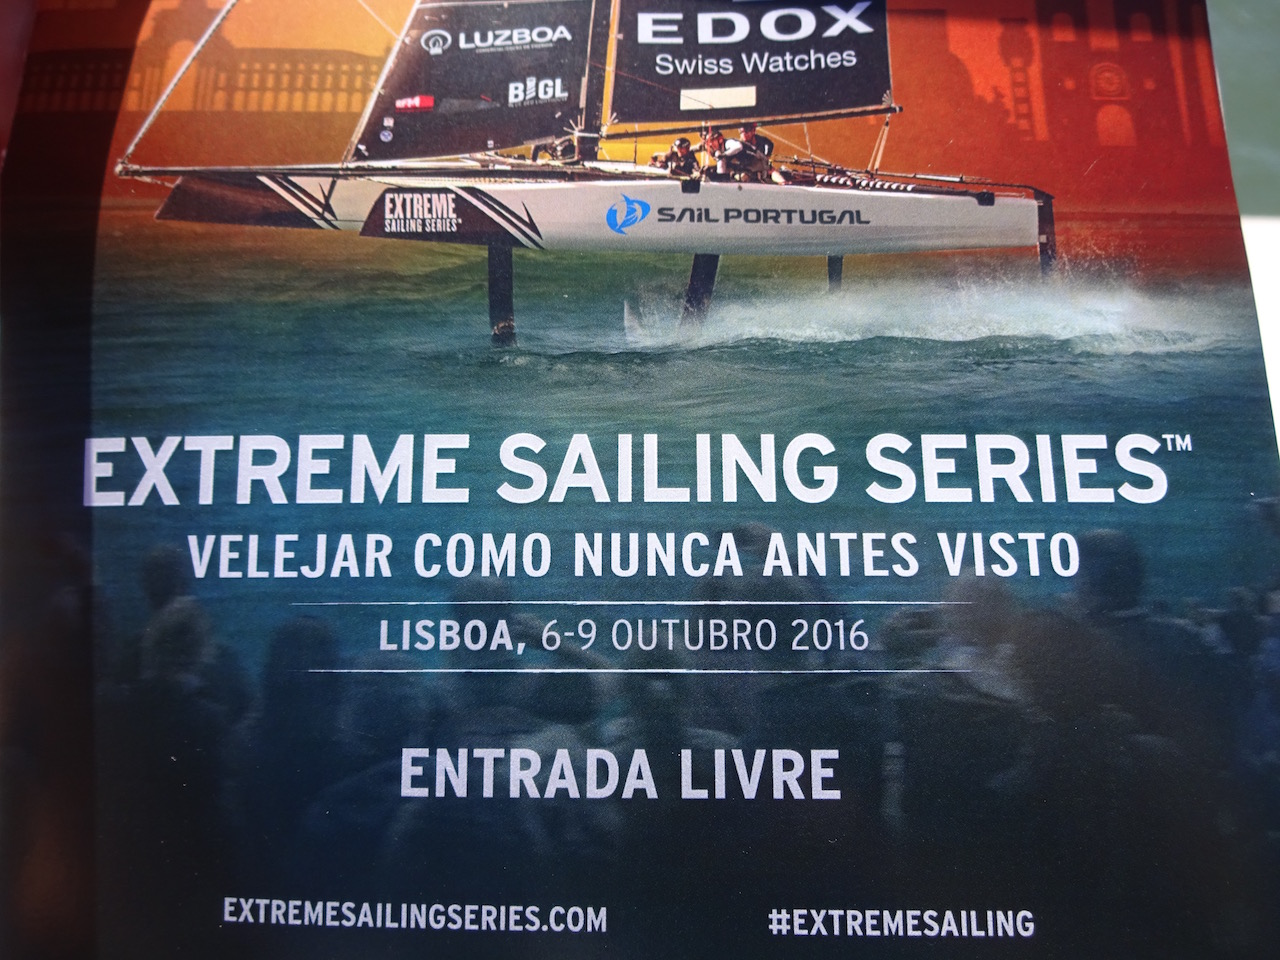 die Extrem Sailing Serie macht Station in Portugal